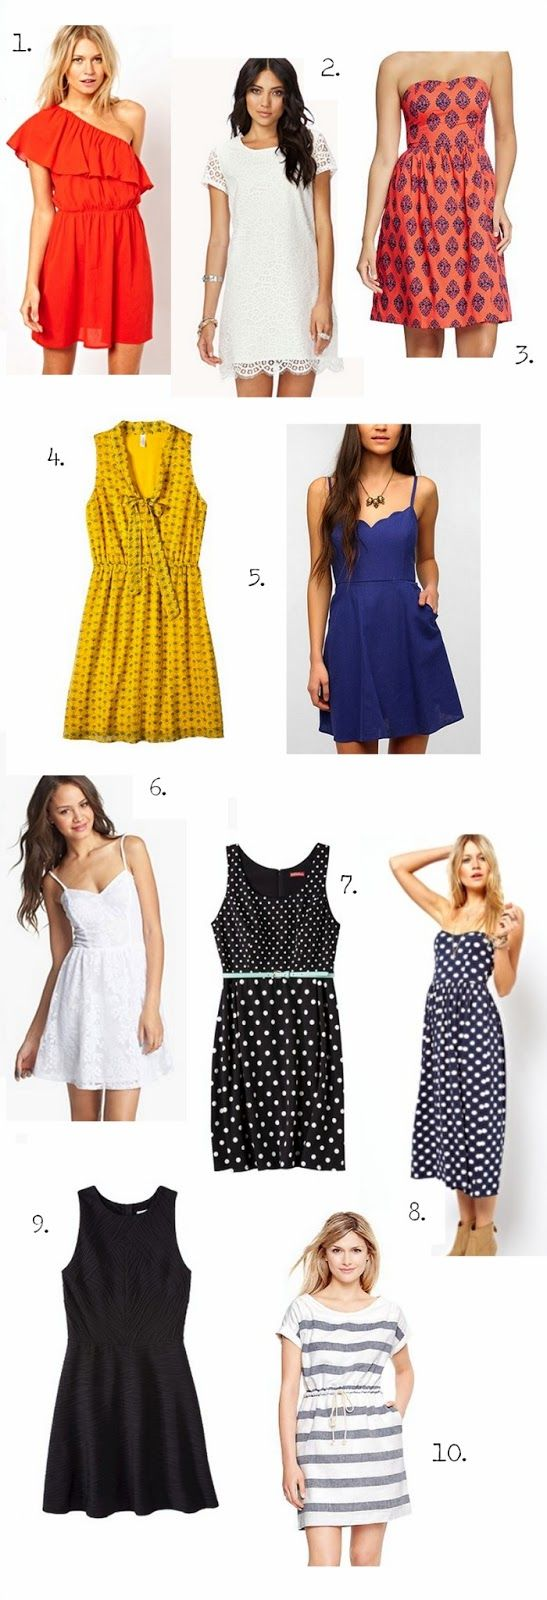 Dresses to wear to a wedding as a guest in summer  budget friendly  summer dresses  on the blog  Pinterest